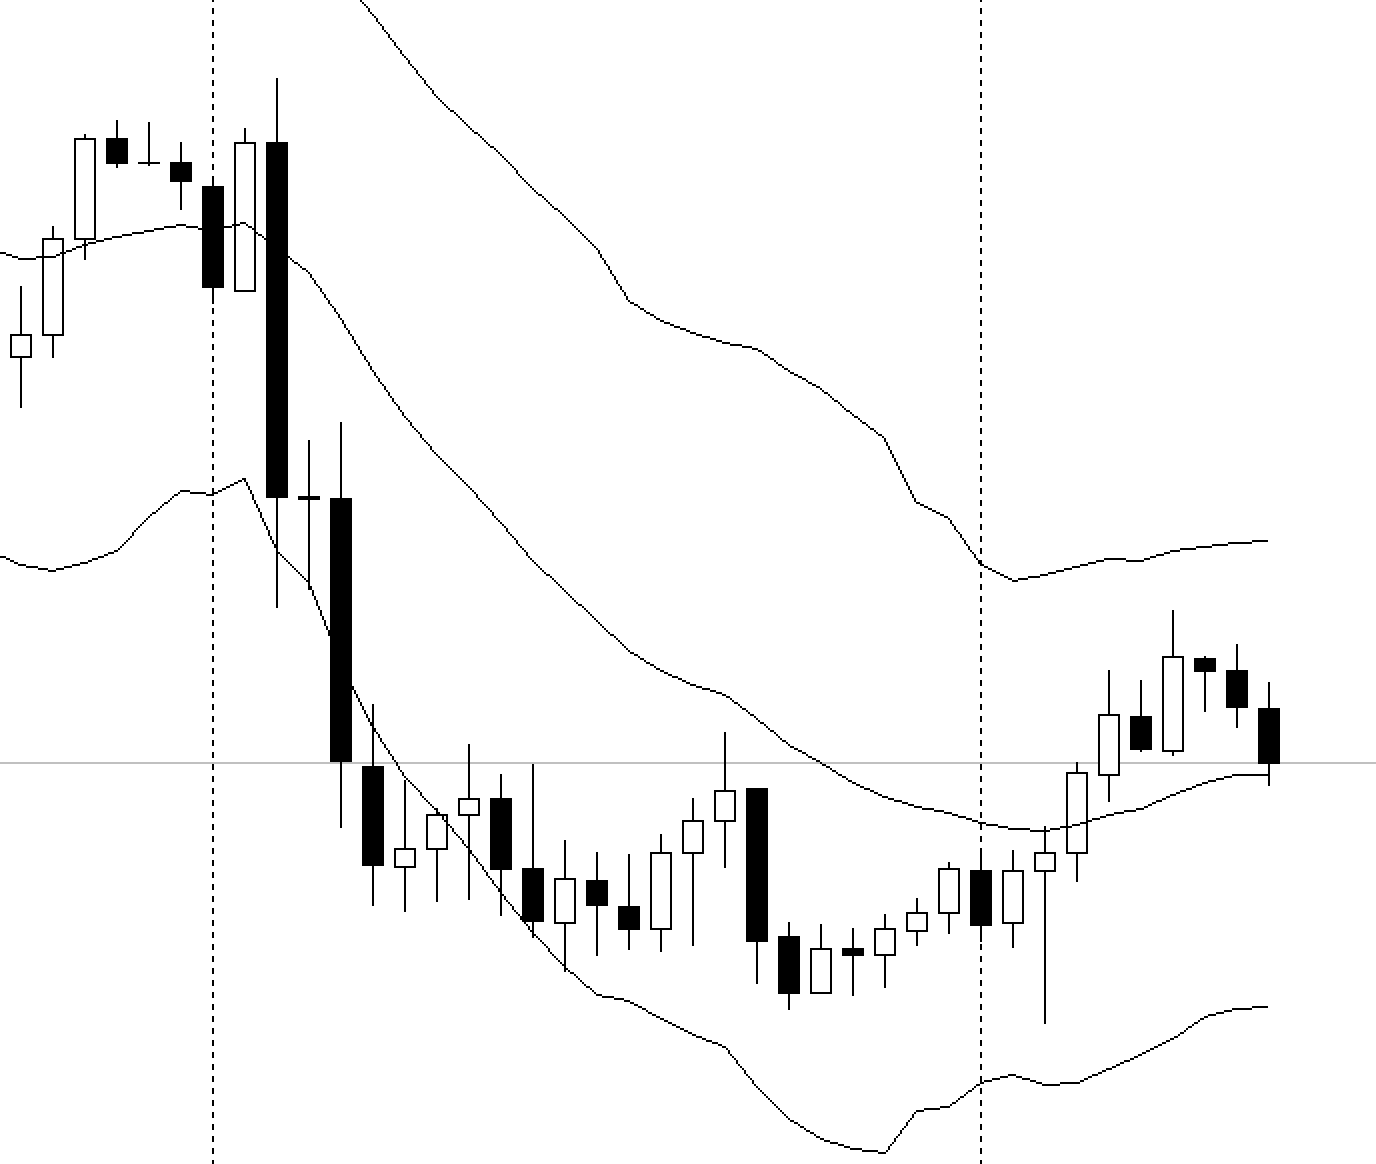 price-action-chuyen-sau-traderviet9.